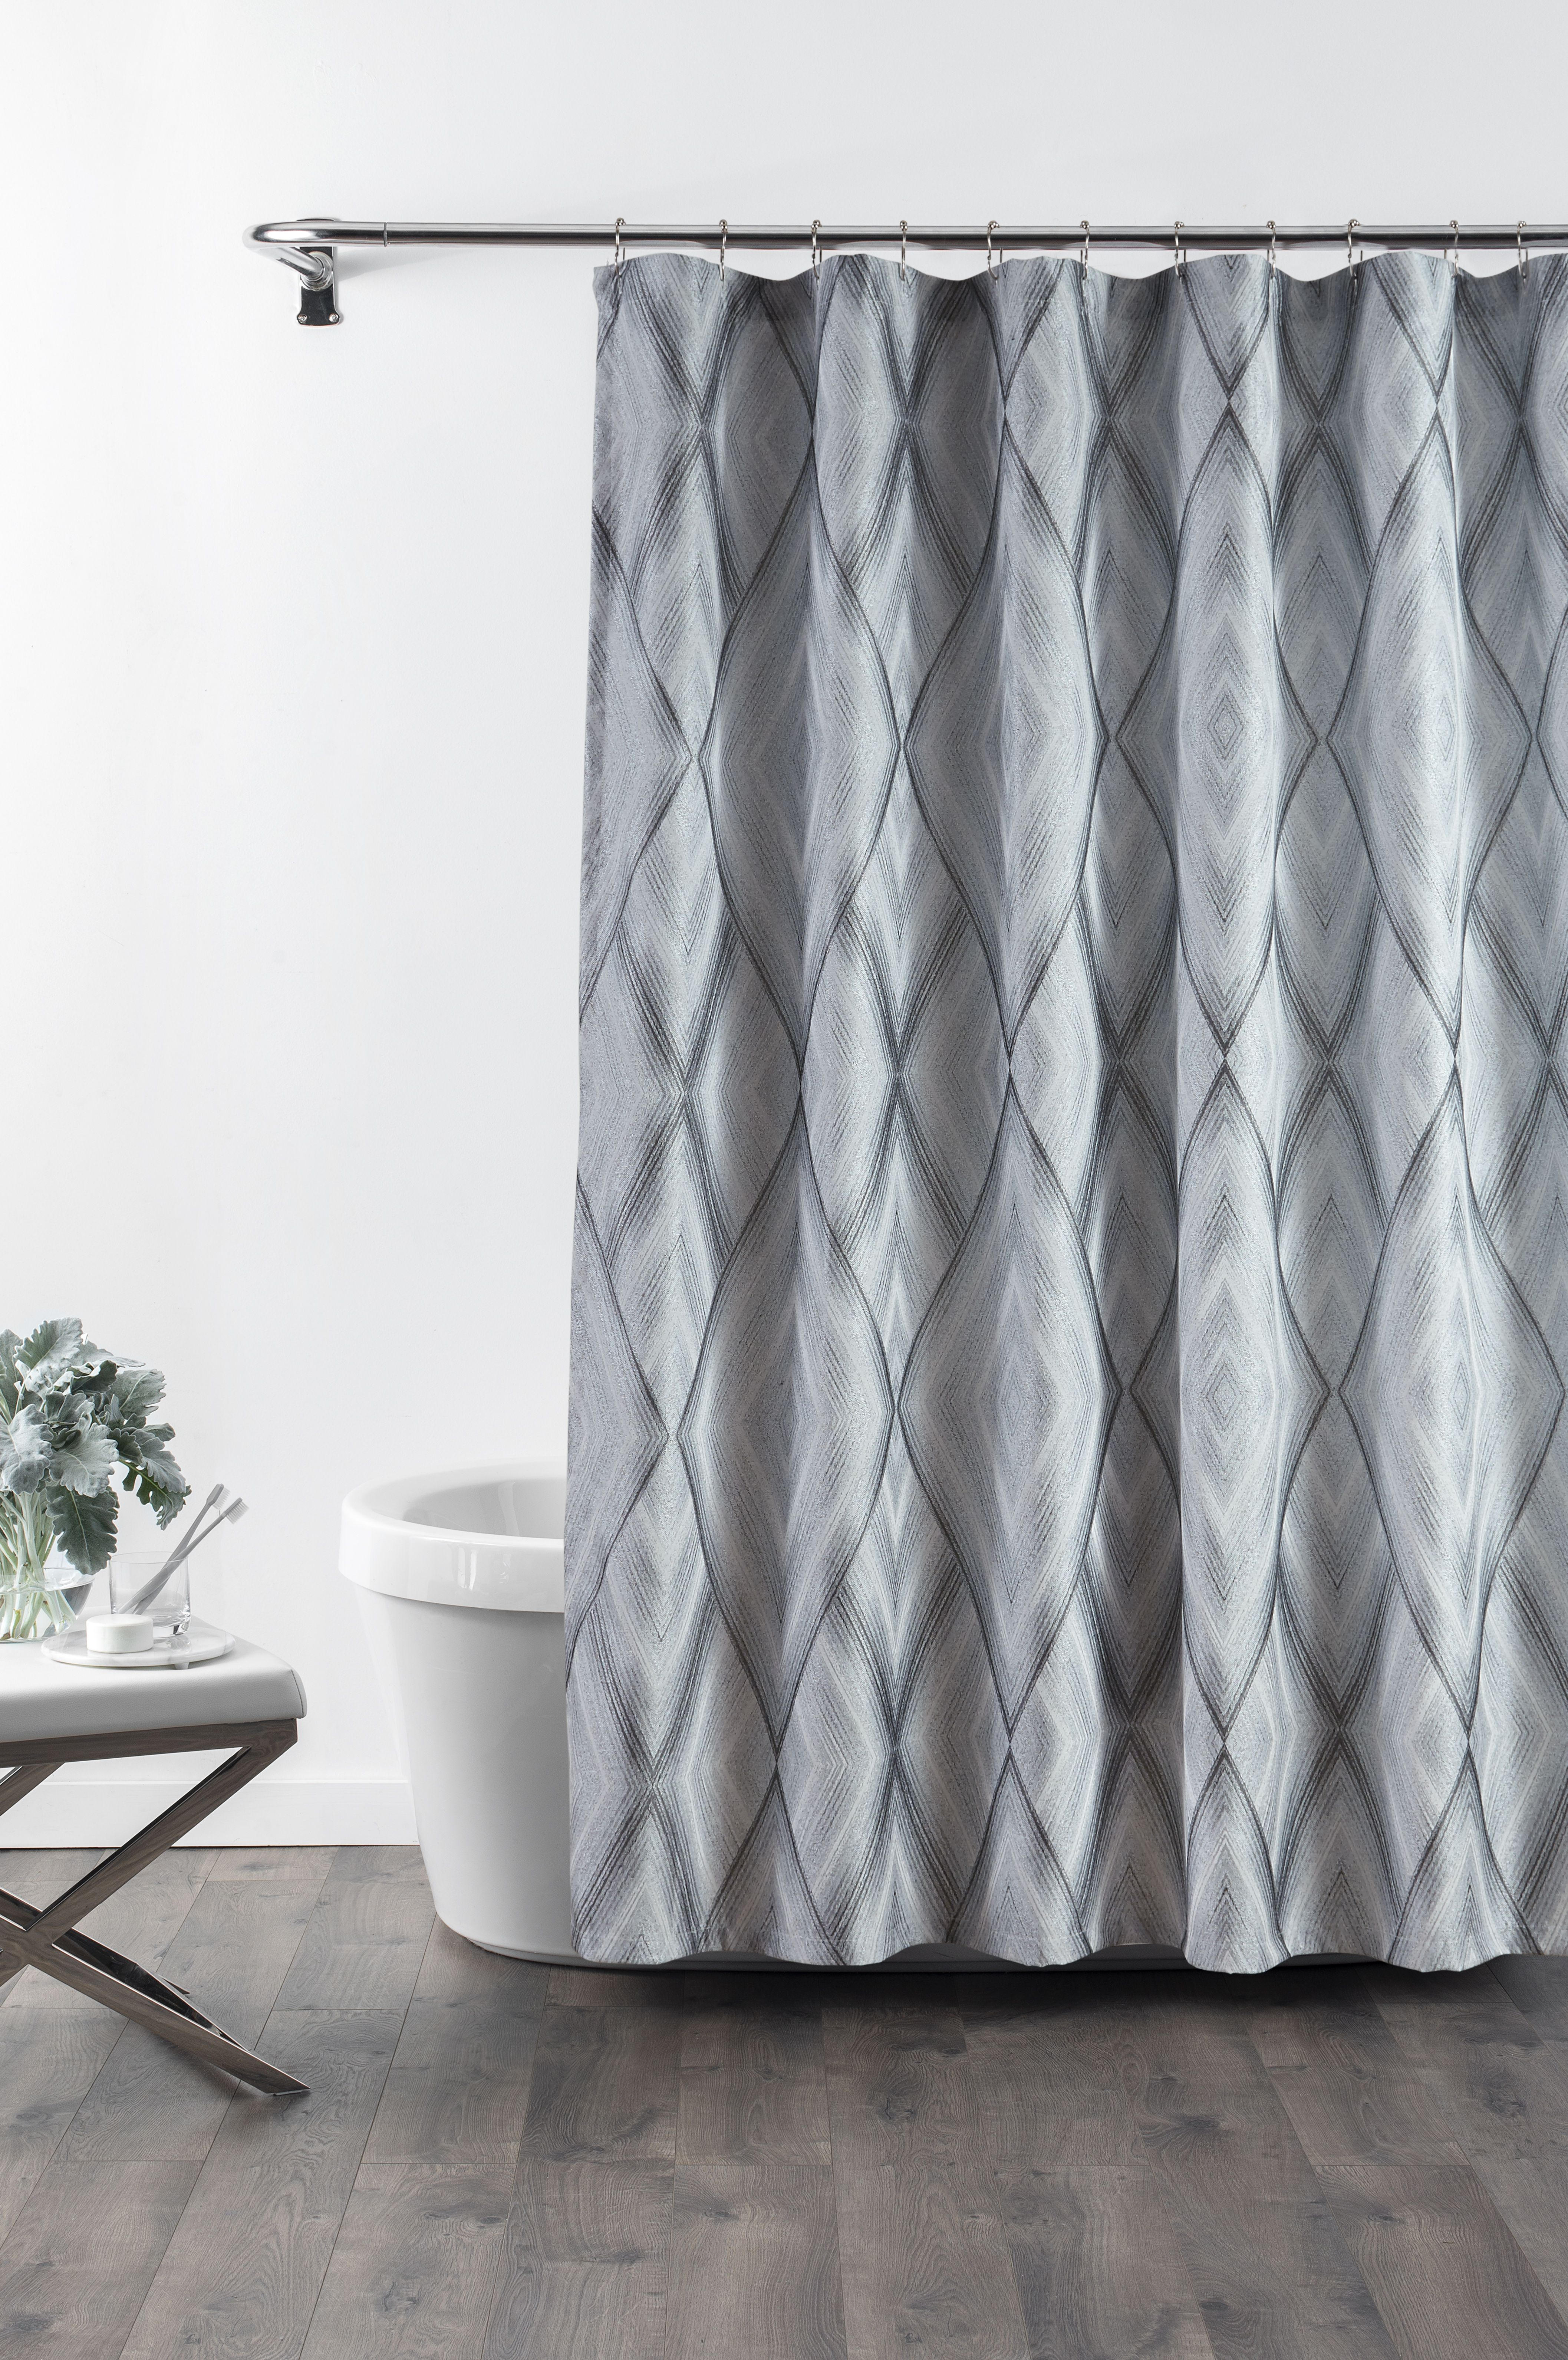 Echo Shower Curtain 72x72 Modern Shower Curtains Curtains